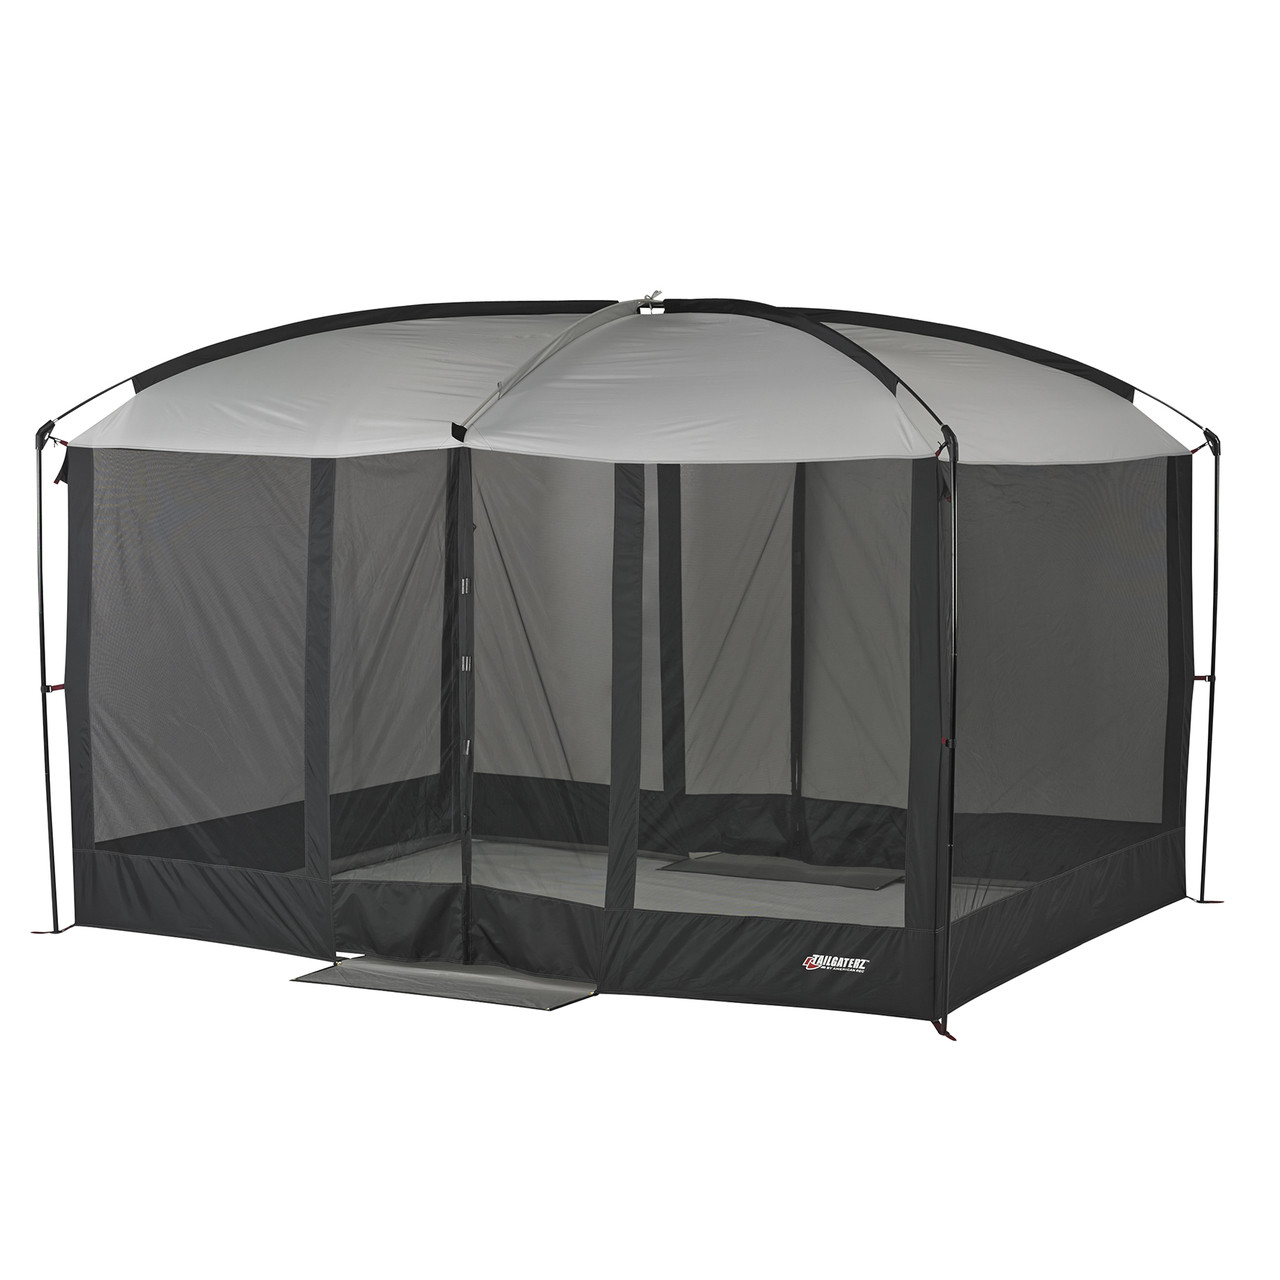 Home · Shelter; Magnet Screenhouse. Image 1  sc 1 st  Tailgaterz : screen house tents - memphite.com